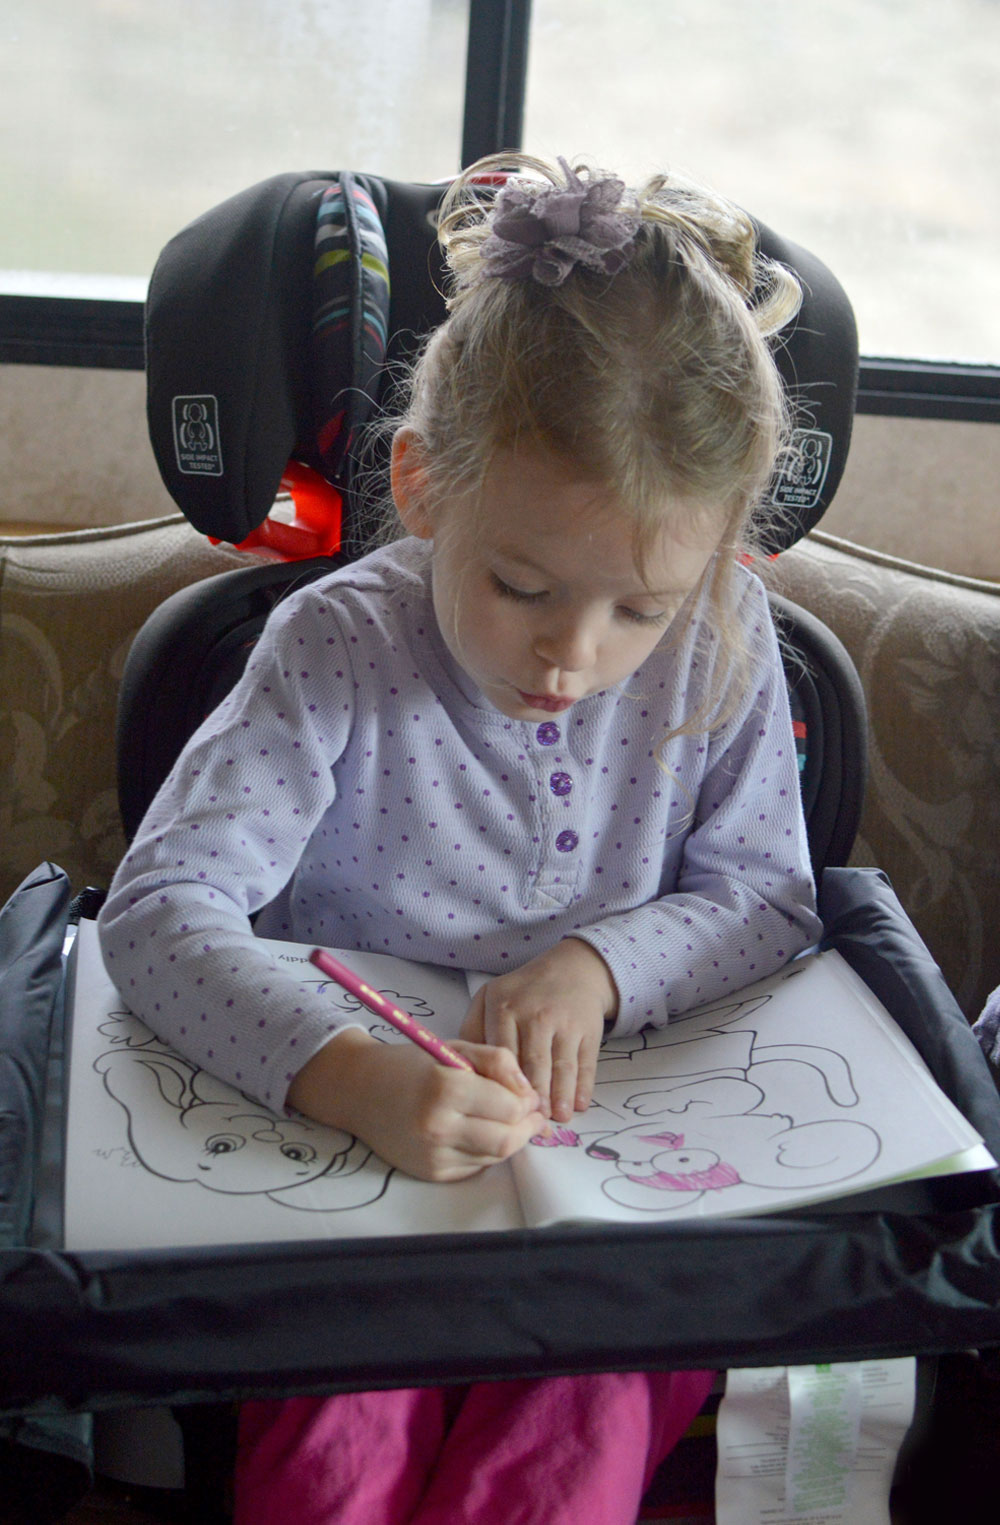 Star Kids Products Snack and Play Travel Tray review - Mommy Scene